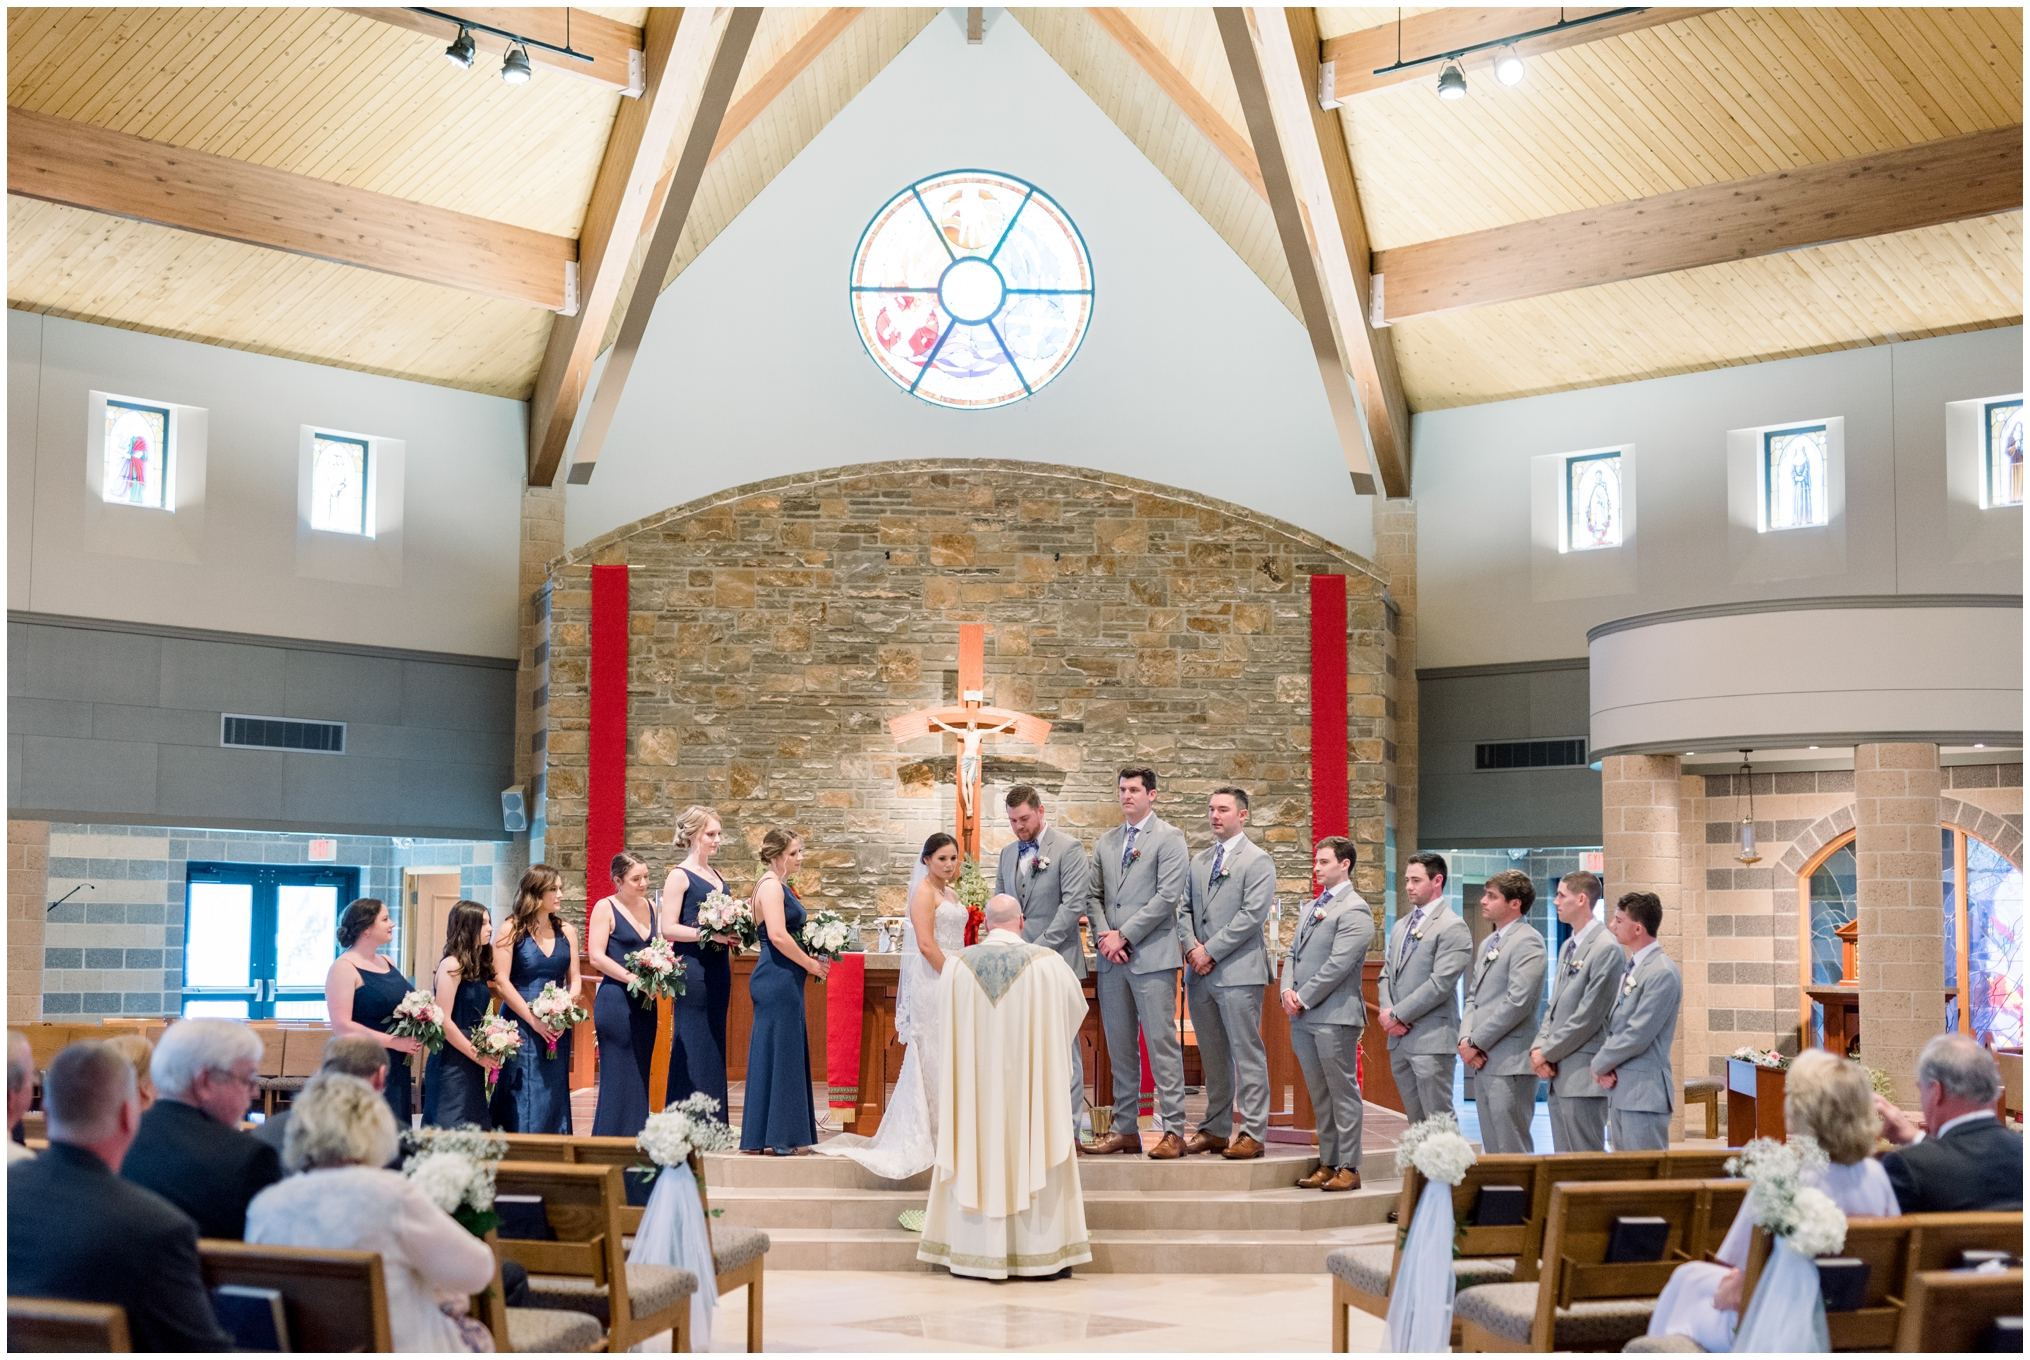 Krista Brackin Photography | April Wedding at The Carriage House at Rockwood Park_0046.jpg